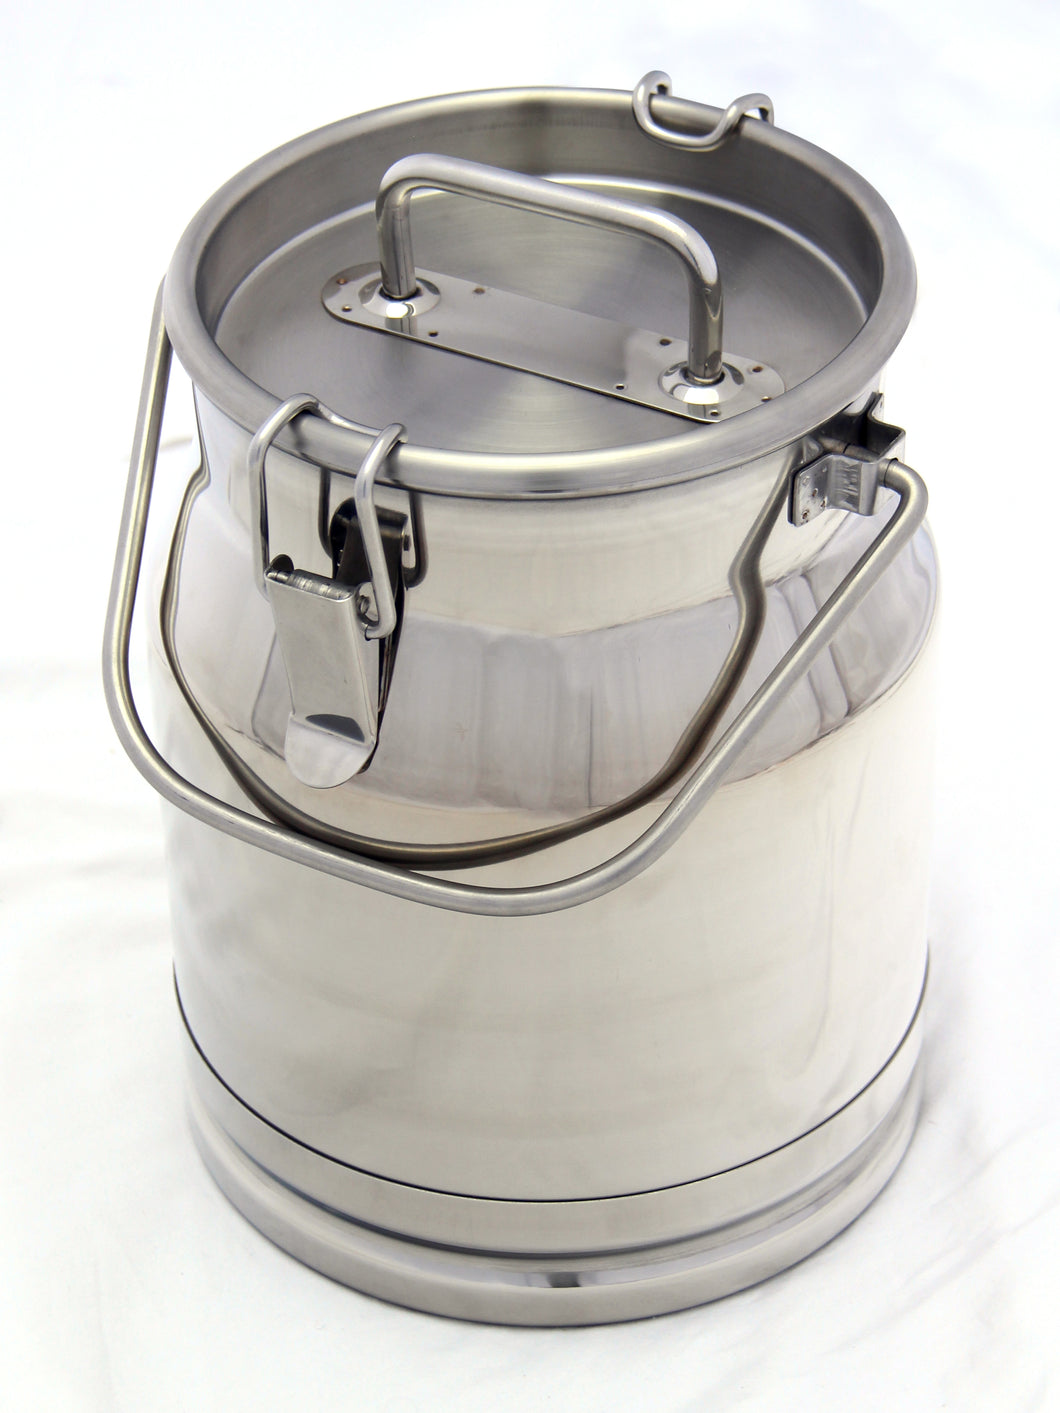 Stainless Steel Milk Transport and Collection Cans